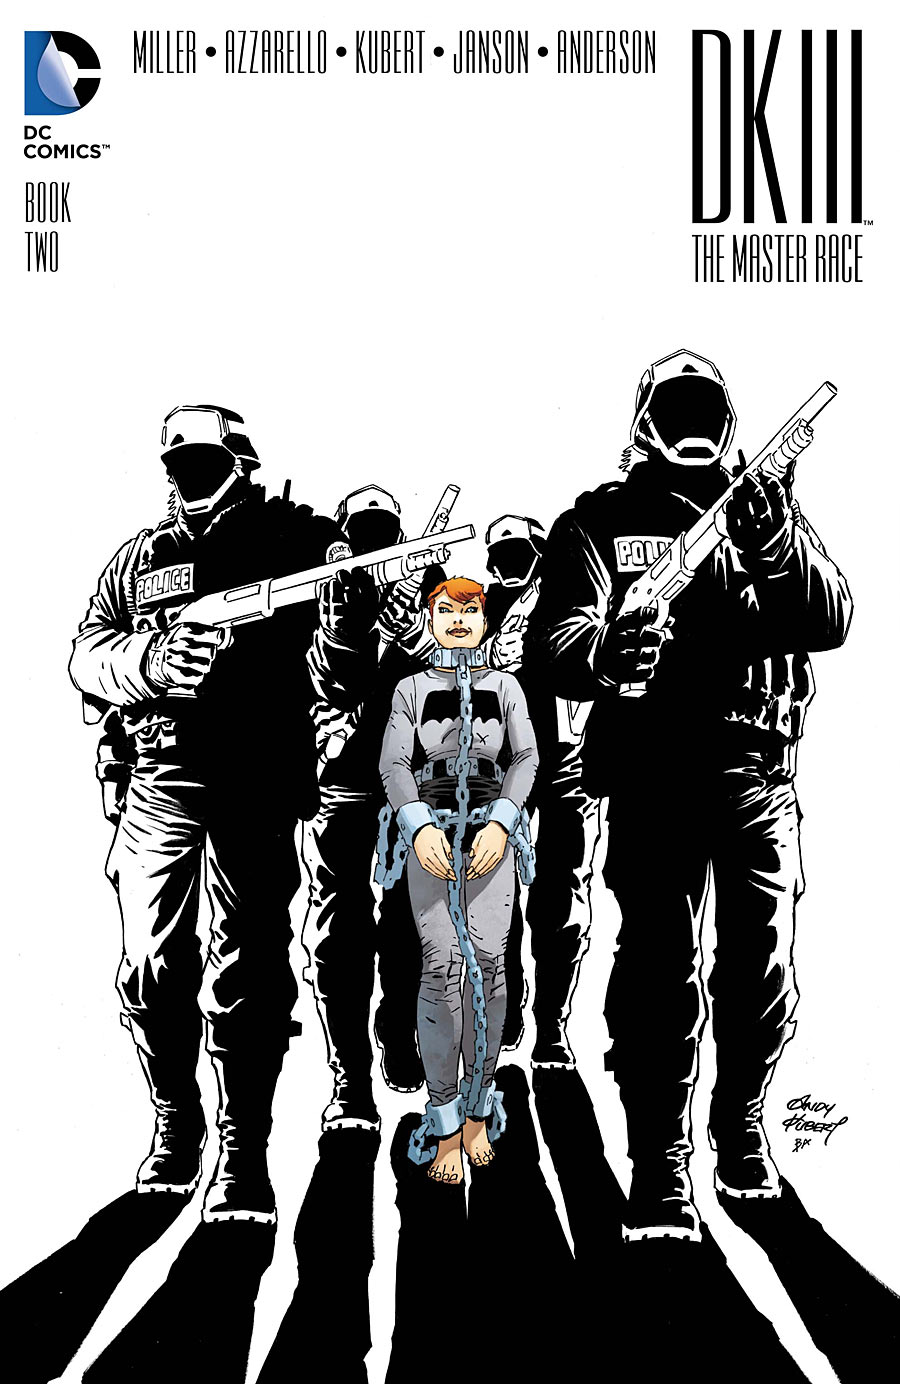 DKIII The Master Race #2 cover